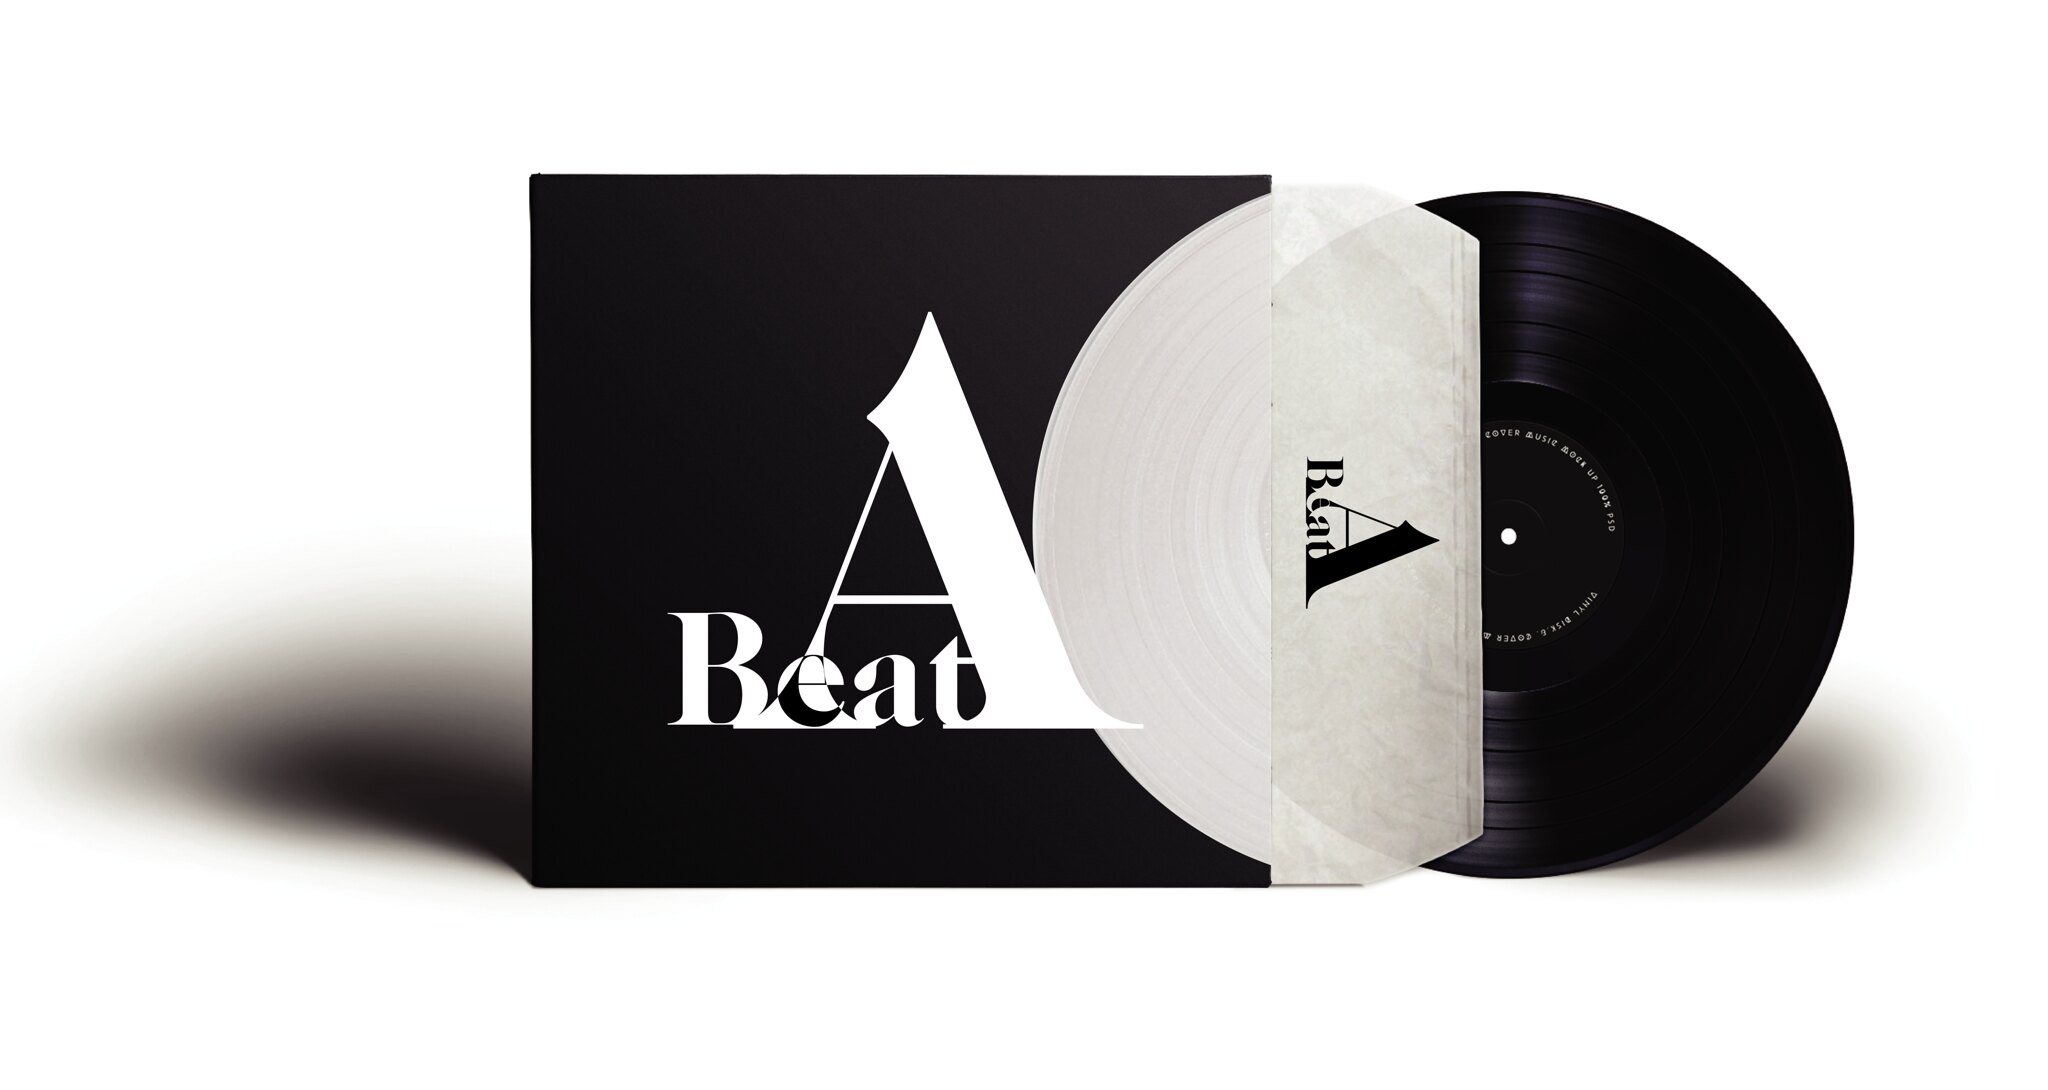 Abeat_vinyl_record_mockup-01